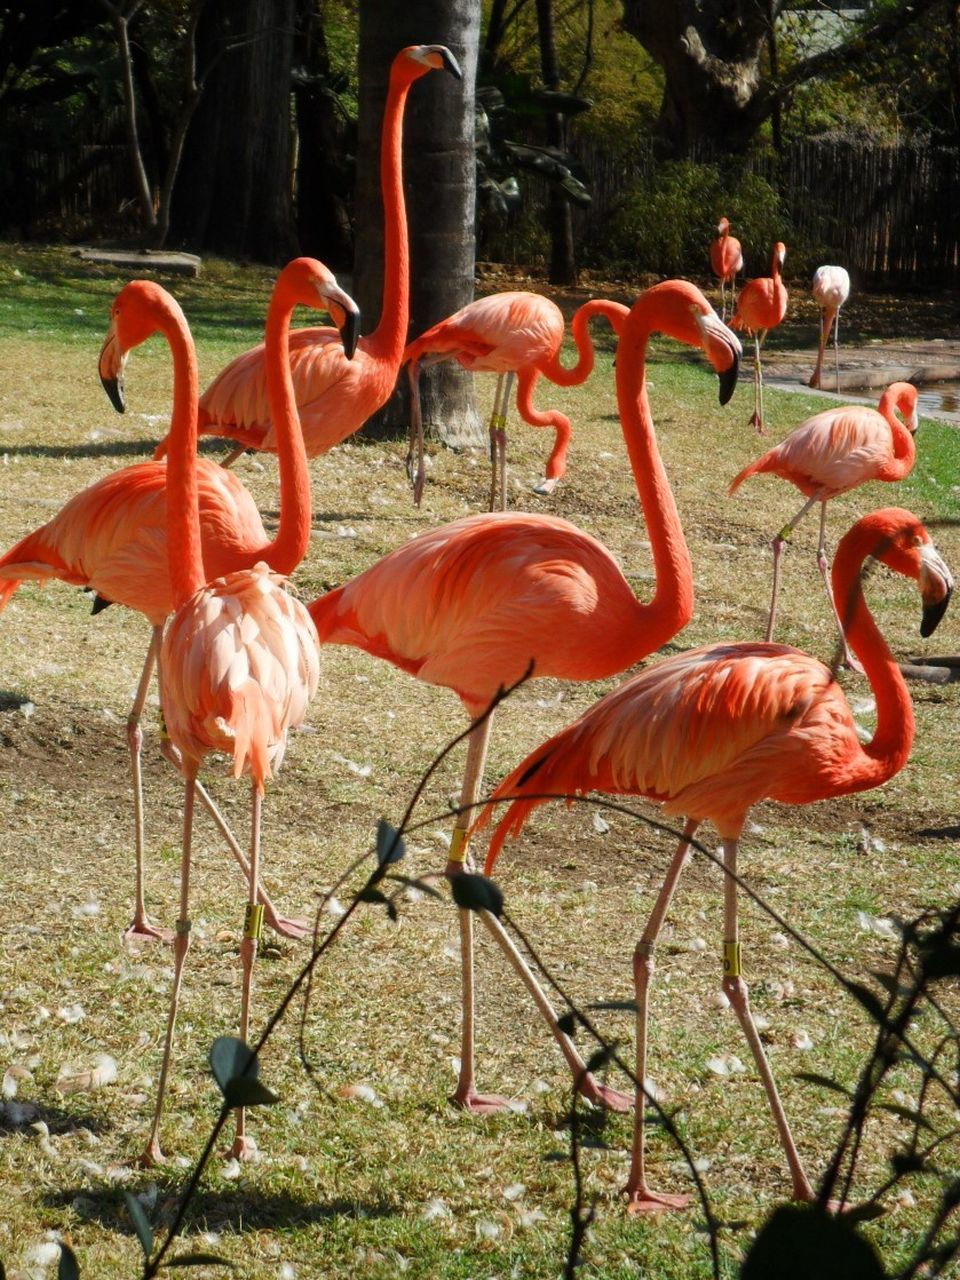 flamingo, bird, animals in the wild, animal themes, nature, large group of animals, no people, animal wildlife, colony, day, outdoors, beauty in nature, sunlight, beak, water, full length